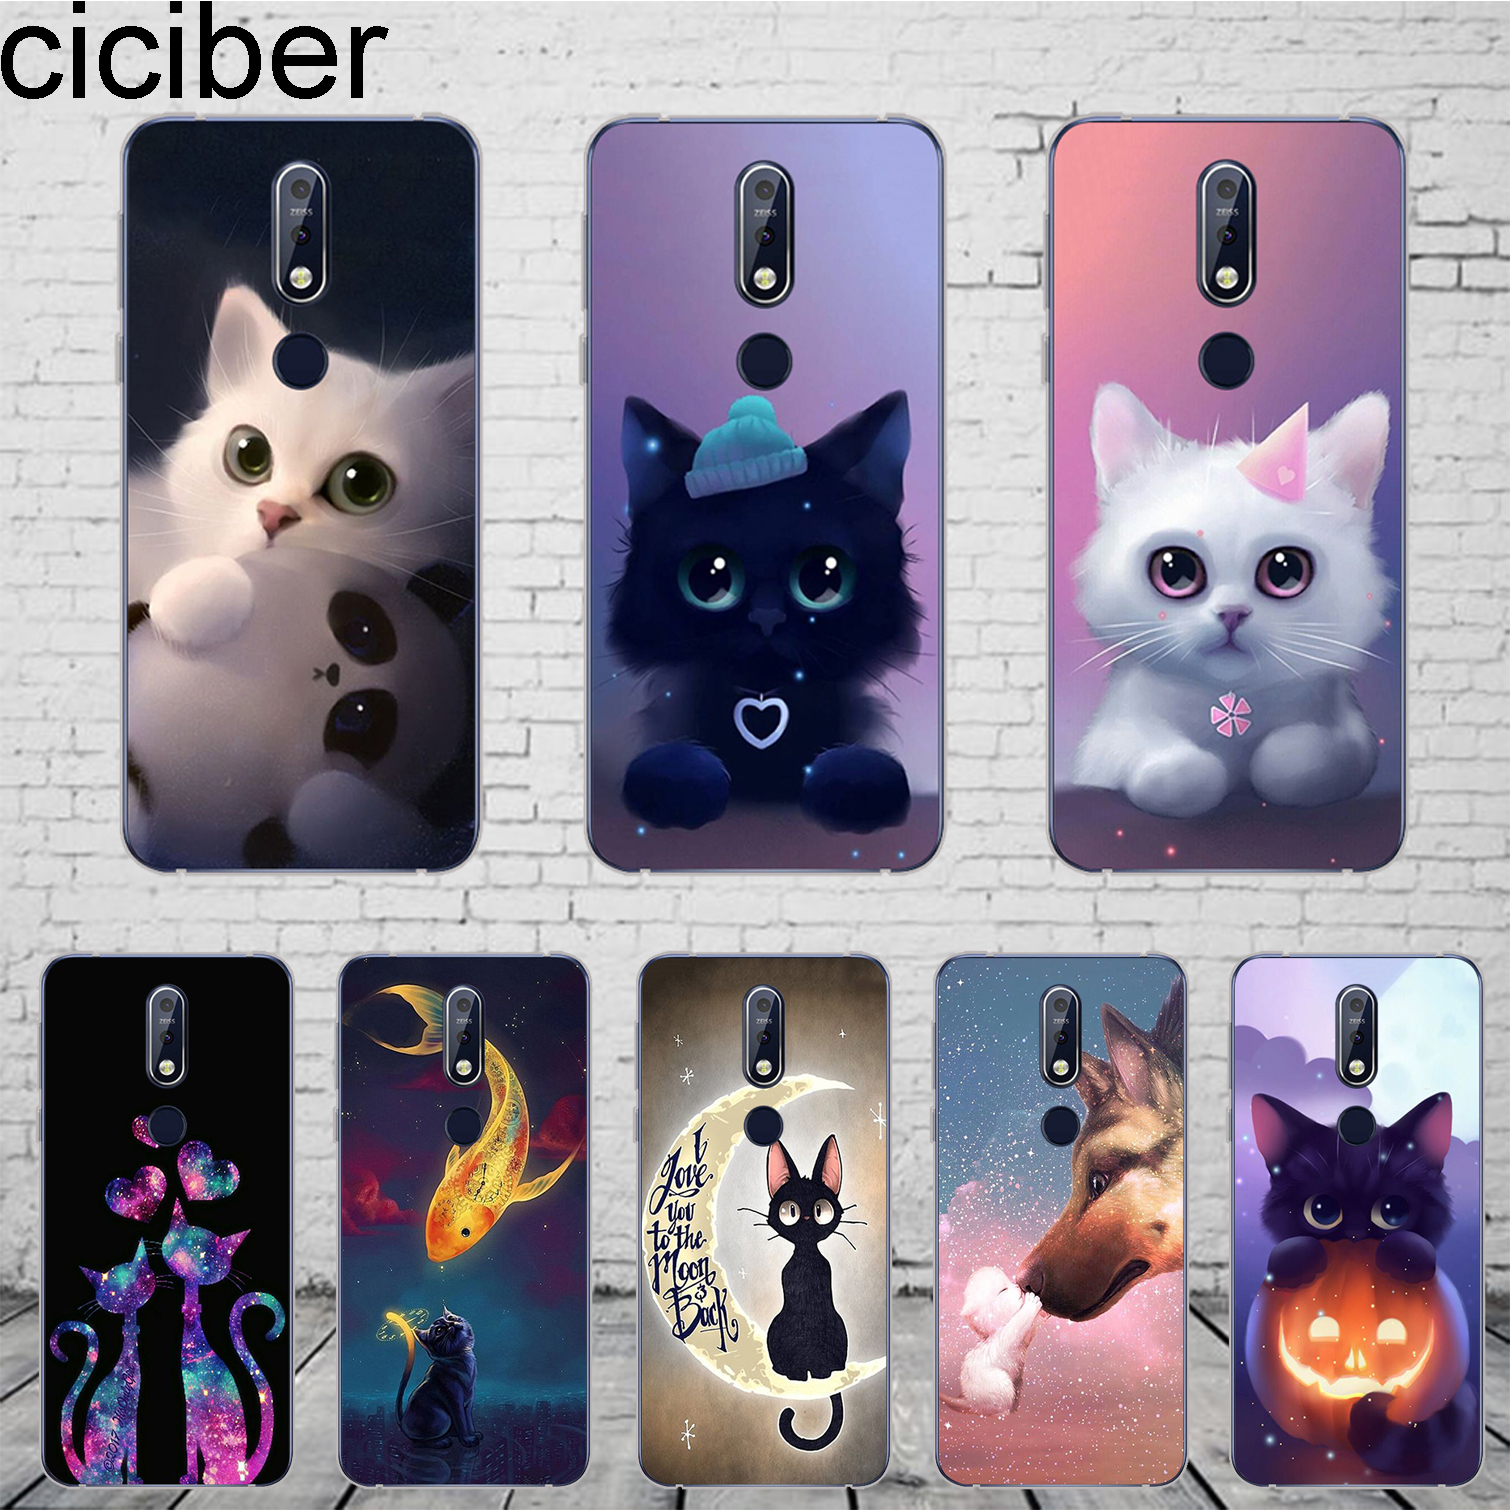 ciciber Cute Animal Cat Cover For <font><b>Nokia</b></font> 8 7 7.1 6 6.1 5 <font><b>5.1</b></font> 3 3.1 2 2 Plus 9 PureView <font><b>Phone</b></font> <font><b>Case</b></font> For <font><b>Nokia</b></font> X7 X6 X5 X3 Soft TPU image